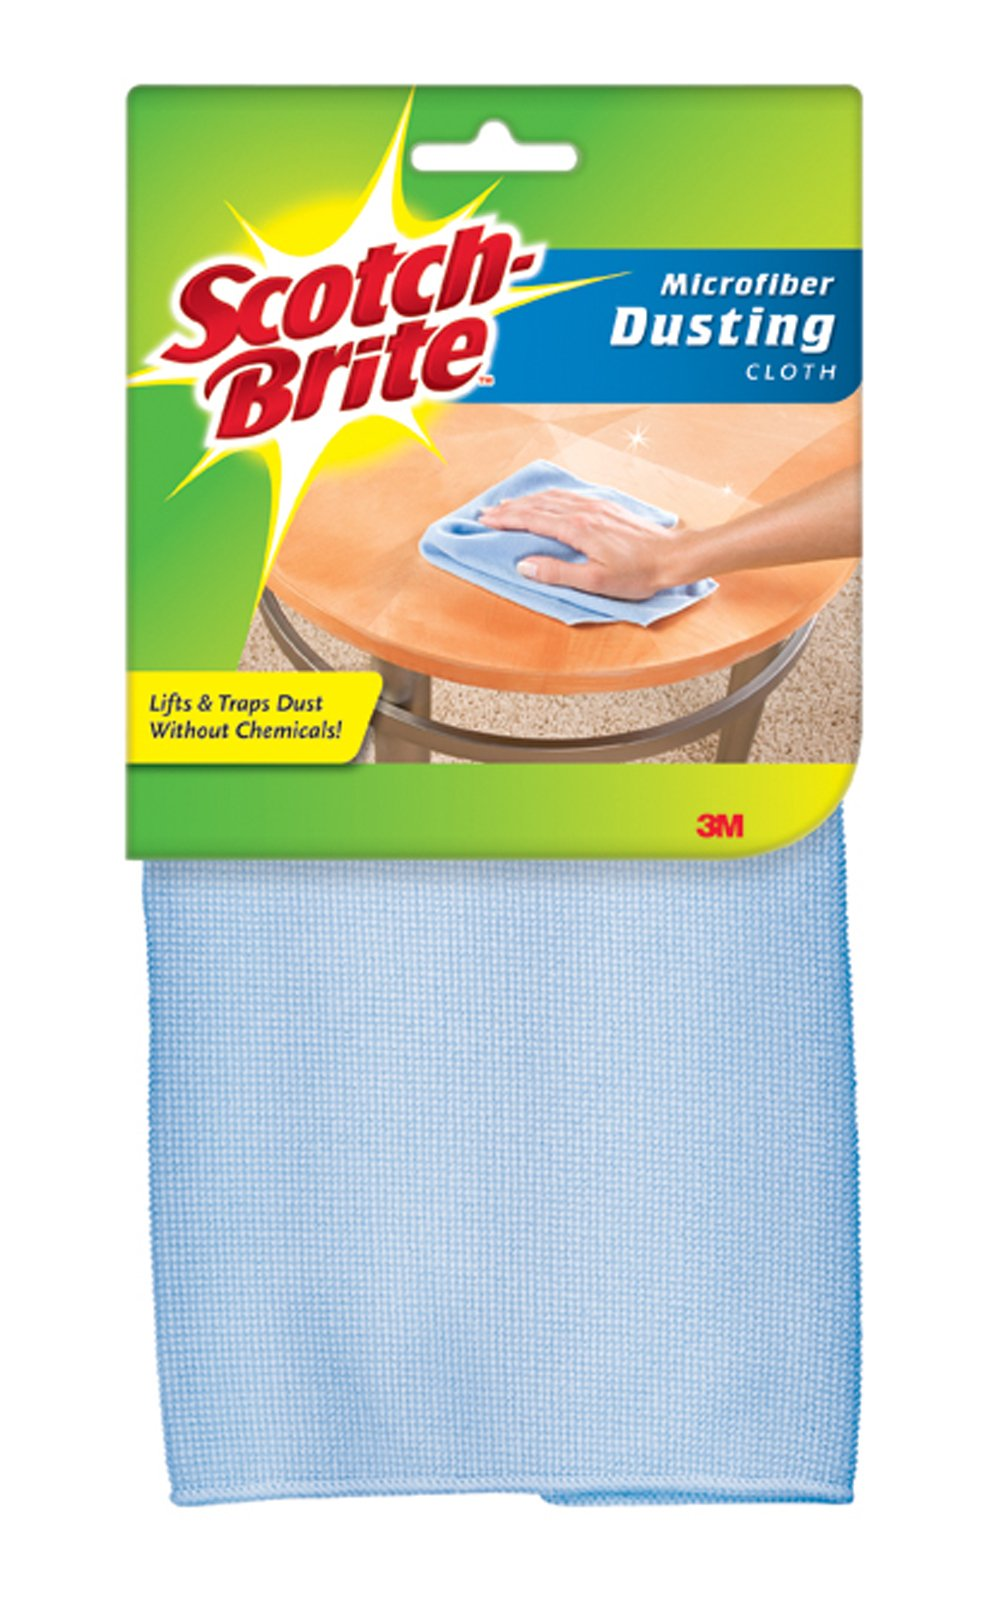 Scotch-Brite Dusting Microfiber Cloth, 1 ea (Colors May Vary)